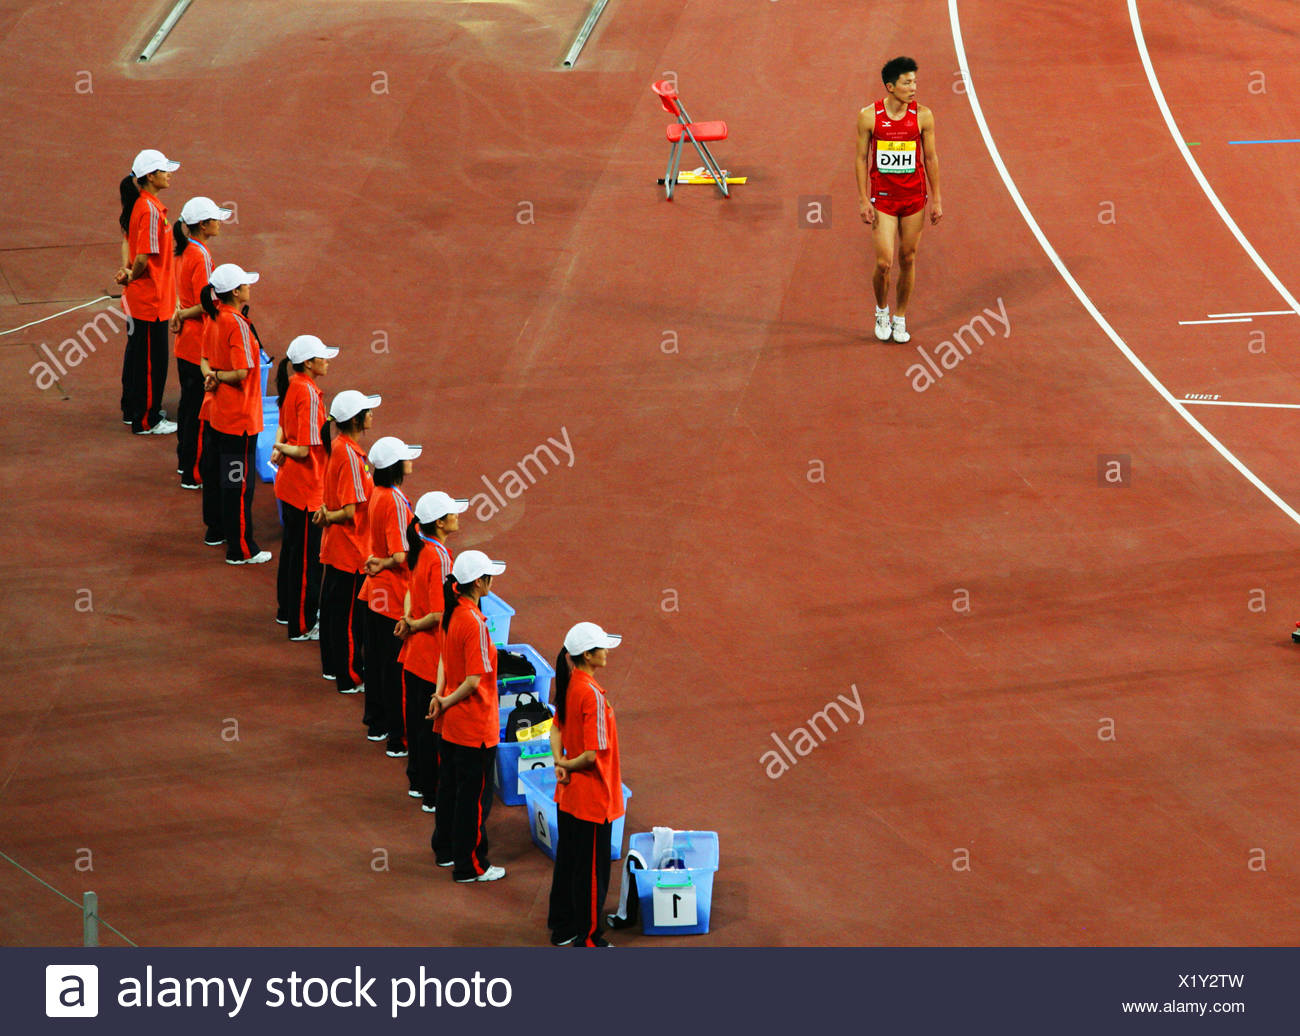 An athelete from Hong Kong walks pass a row of janitors, Beijing, China - Stock Image